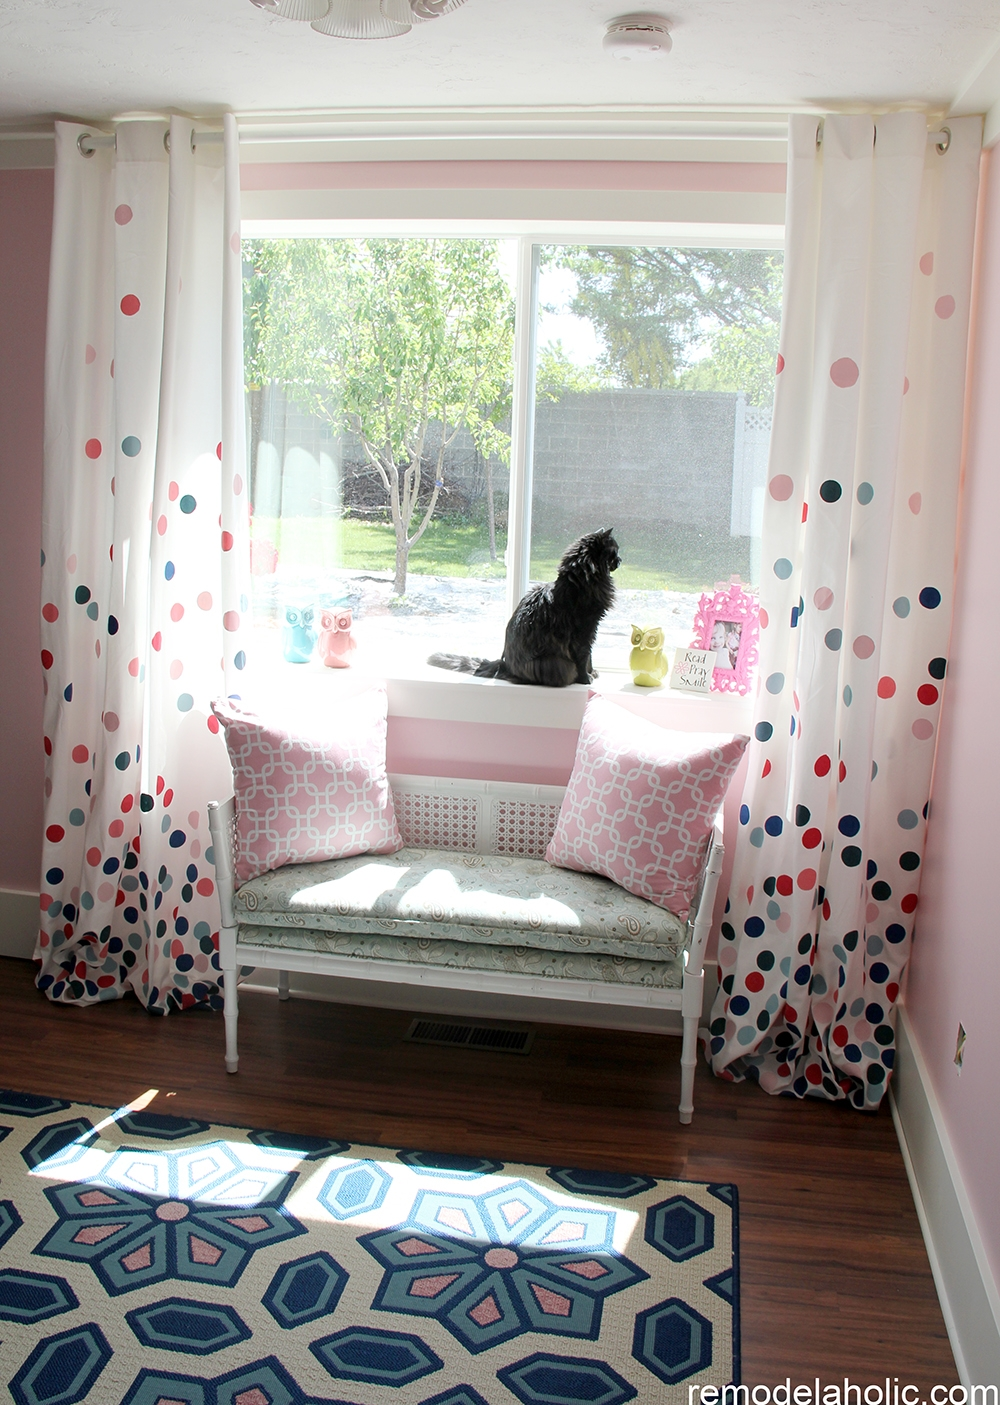 Remodelaholic Confetti Drapes Tutorial With Regard To Navy And White Polka Dot Curtains (Image 23 of 25)